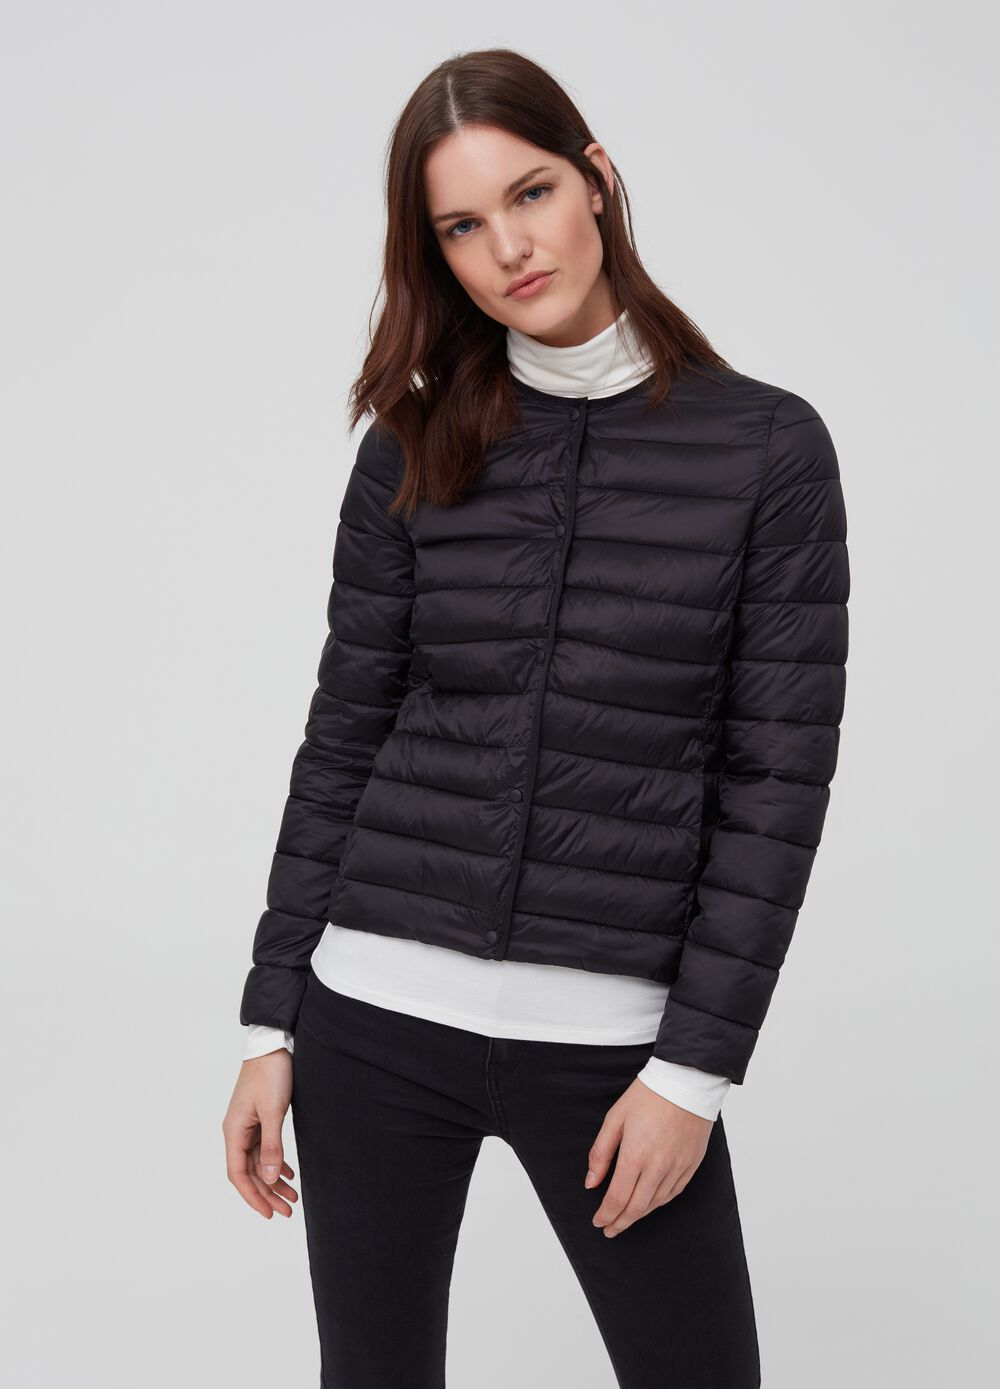 Ultra-lightweight jacket